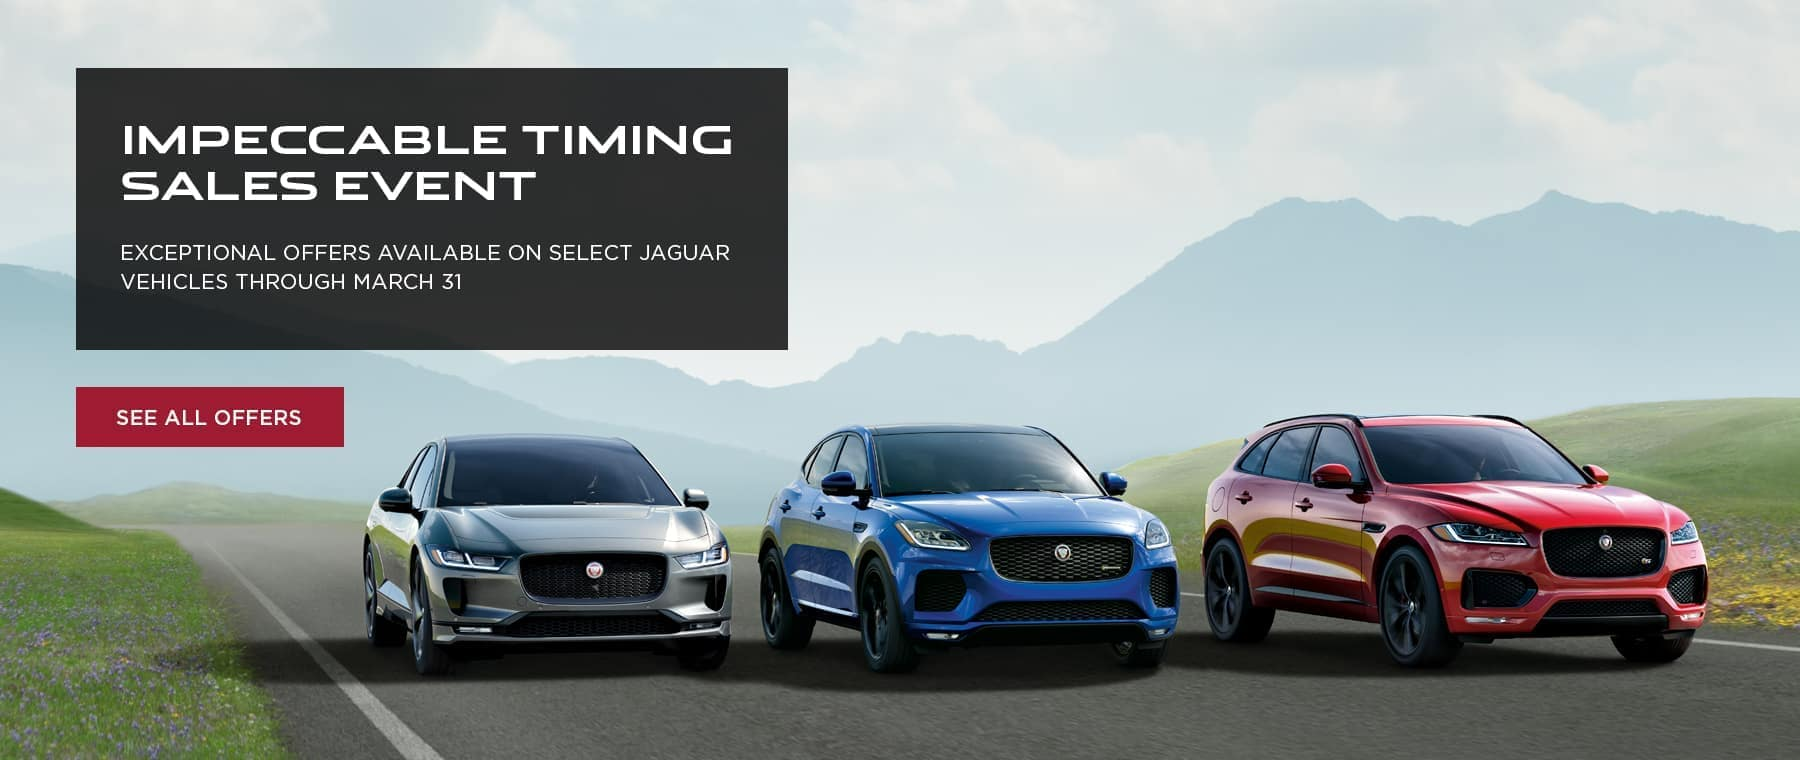 Impeccable Timing Sales Event See Offers